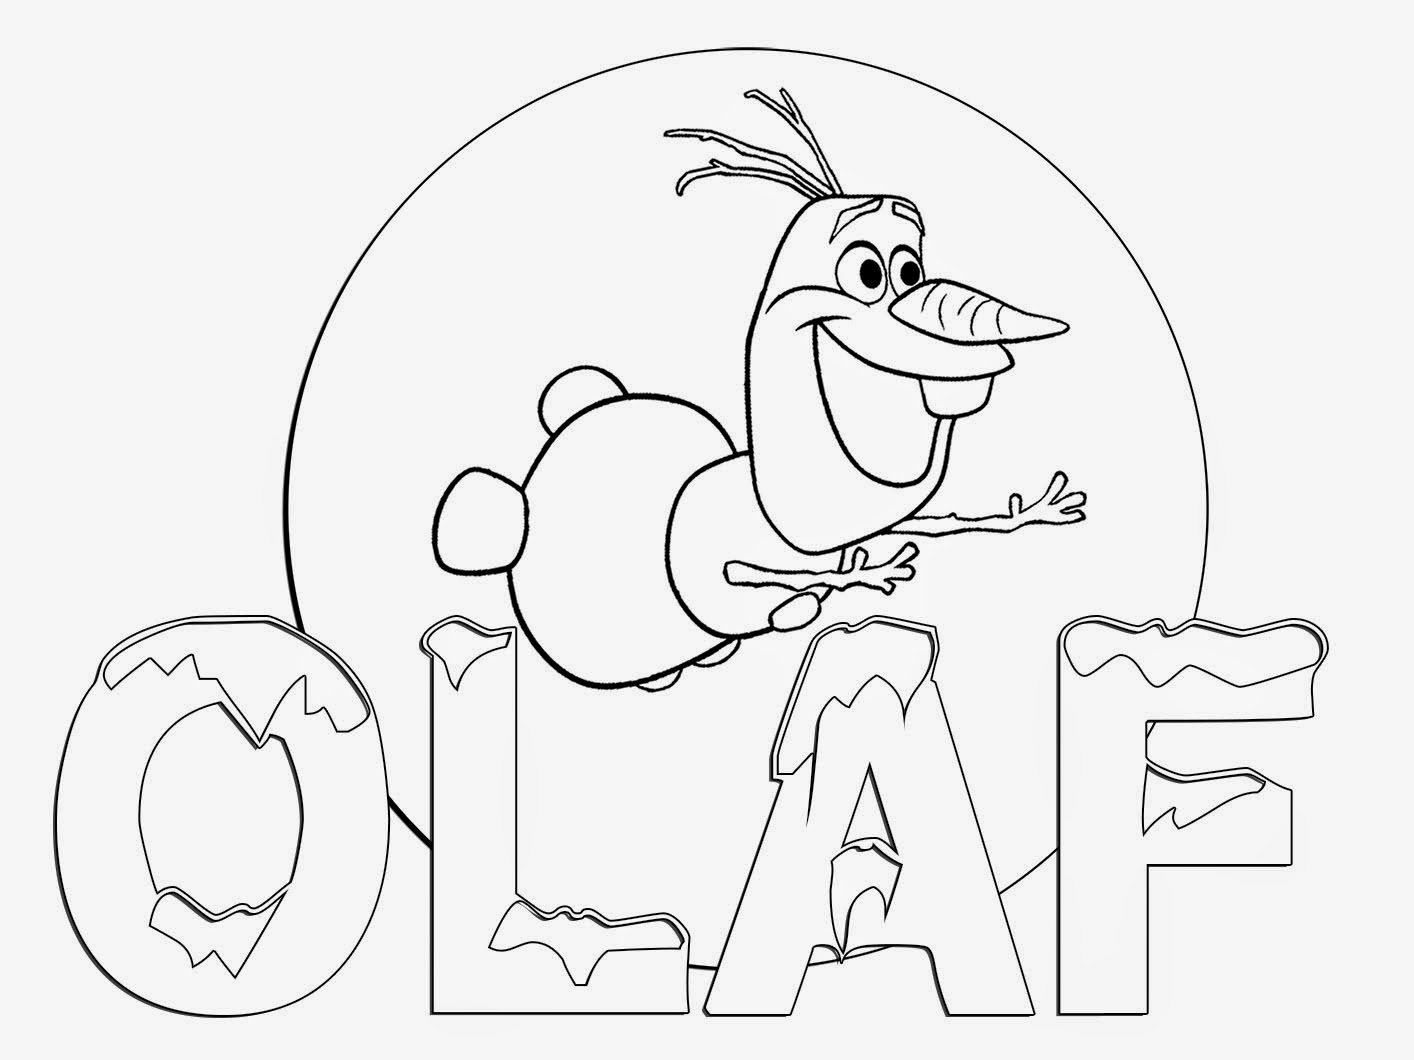 Printable Disney Cartoon Olaf Flying Dania Rehman Walt Coloring Pages